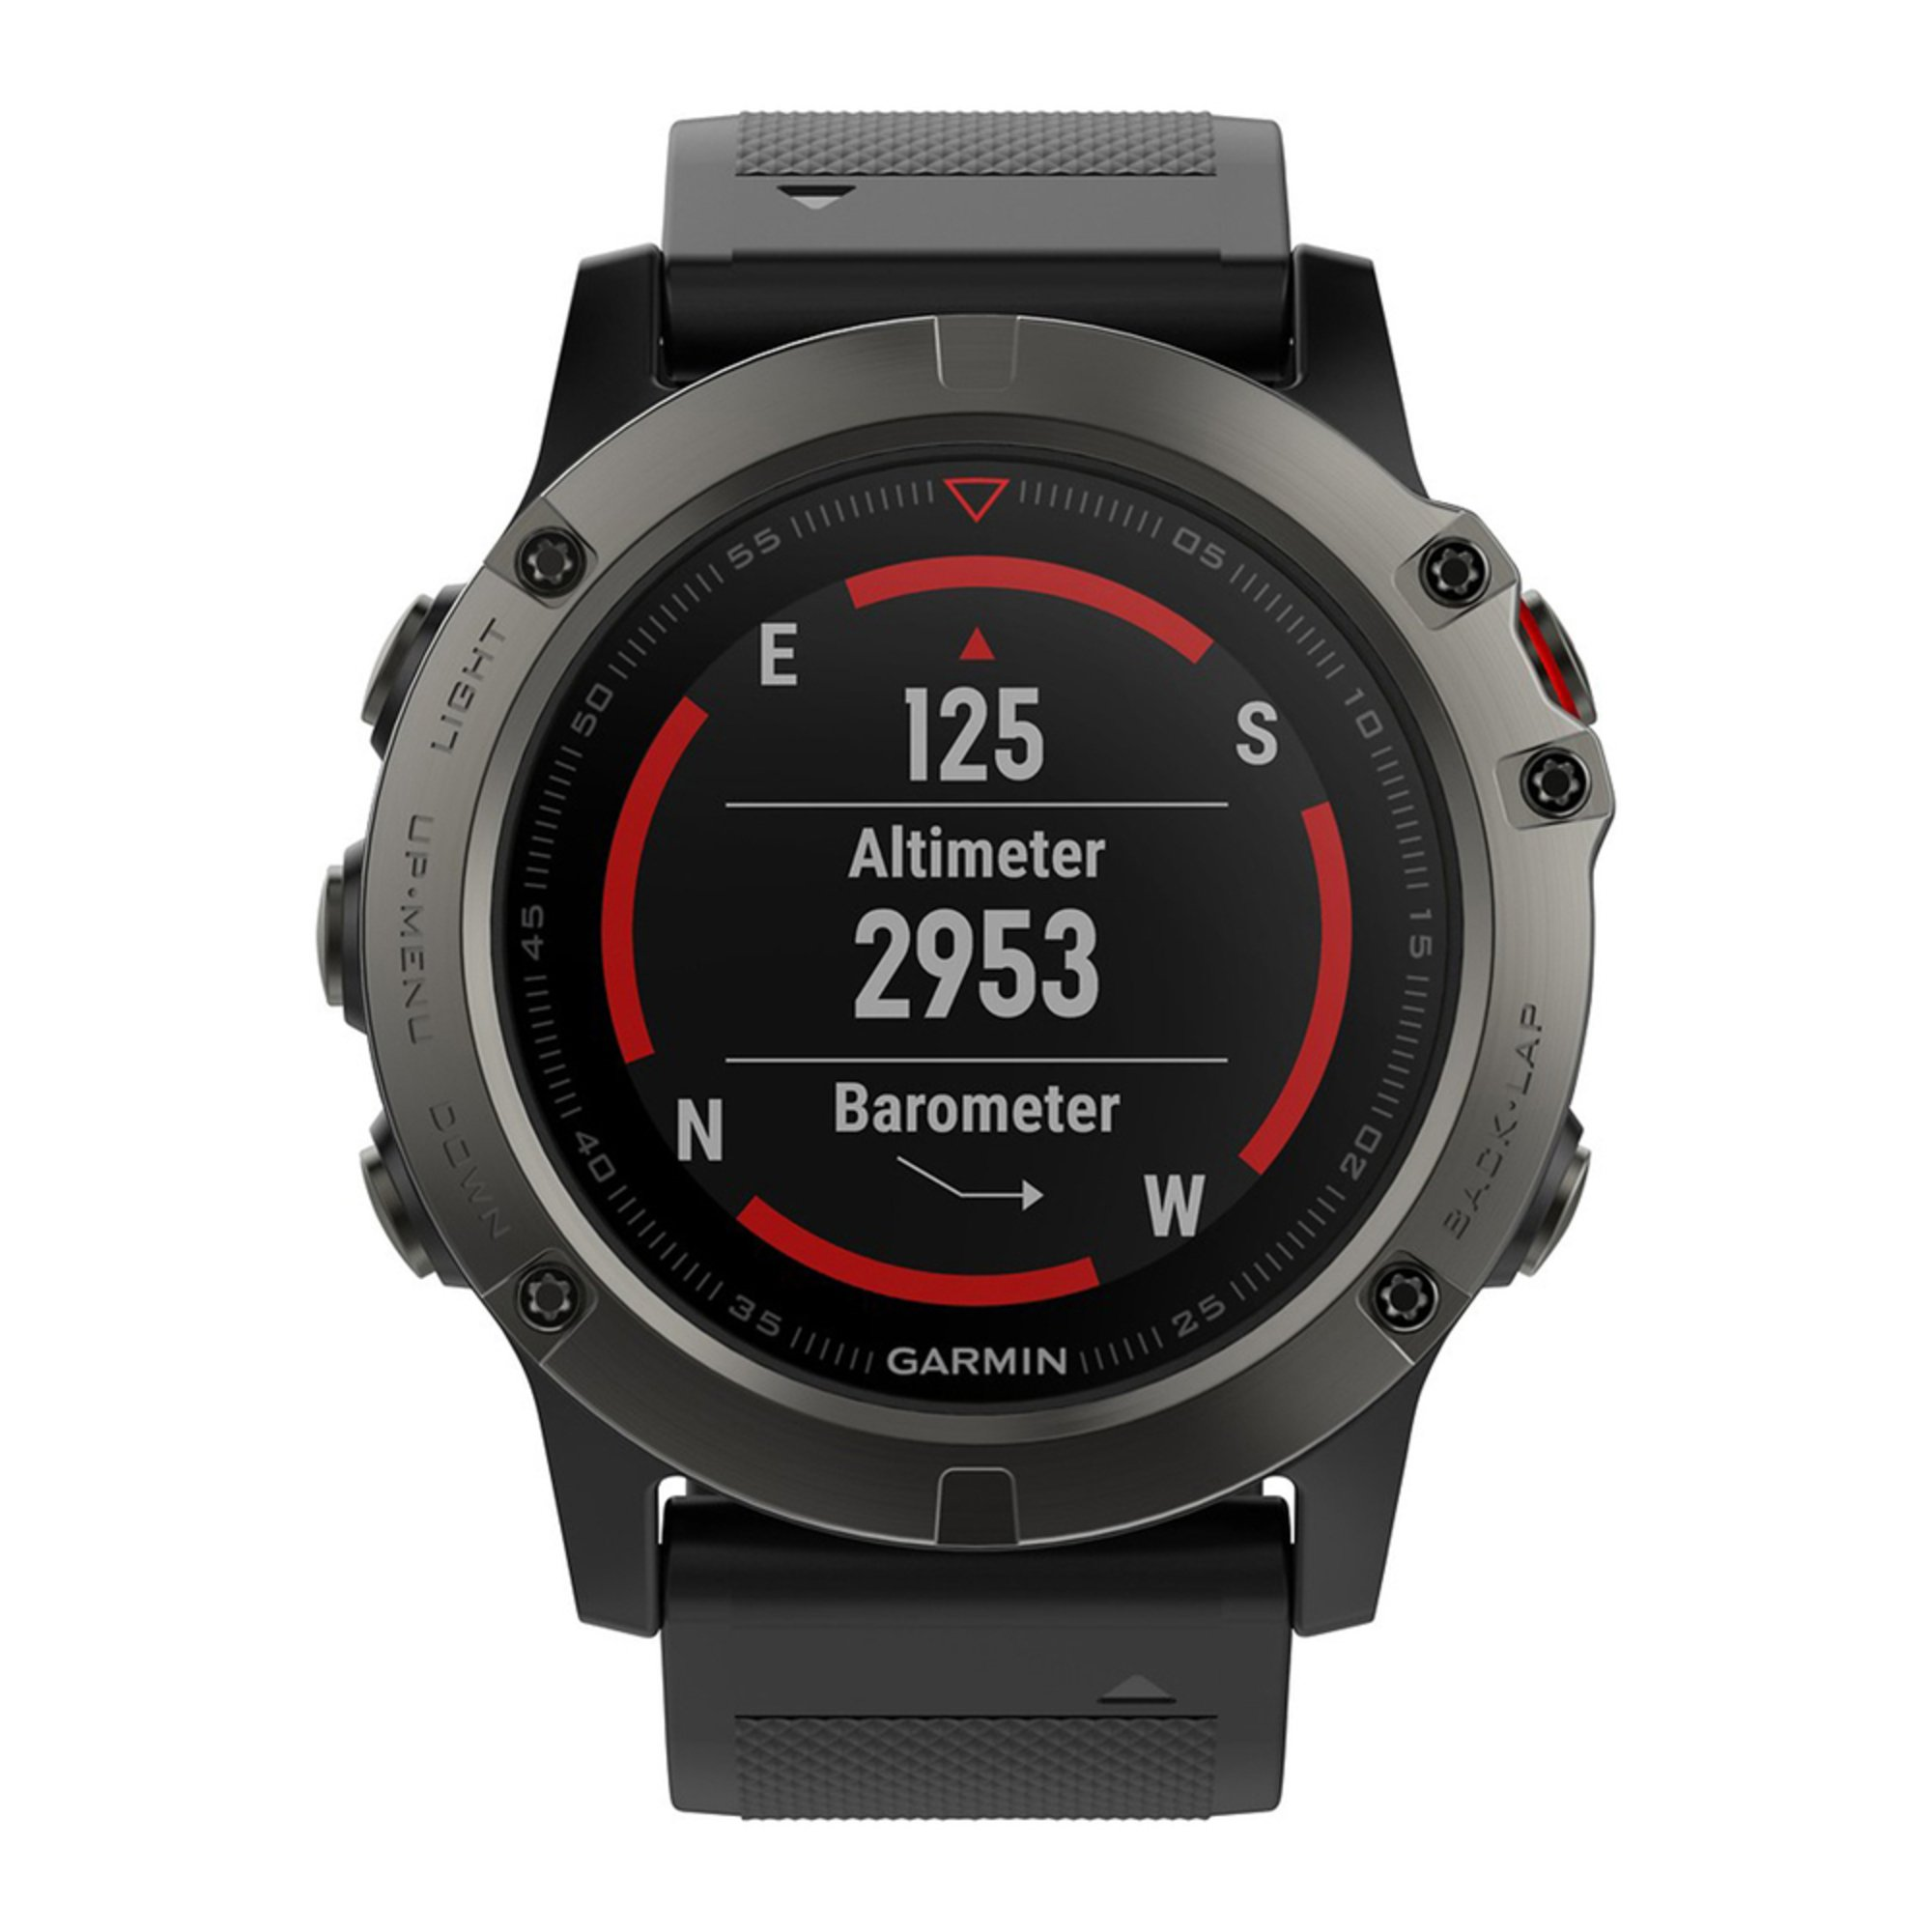 Fitness Trackers Shop Your Navy Exchange Official Site Fitbit Ionic Charcoal Smoke Gray Garmin Fenix 5x Sapphire Multisport Gps Watch Wifi 12